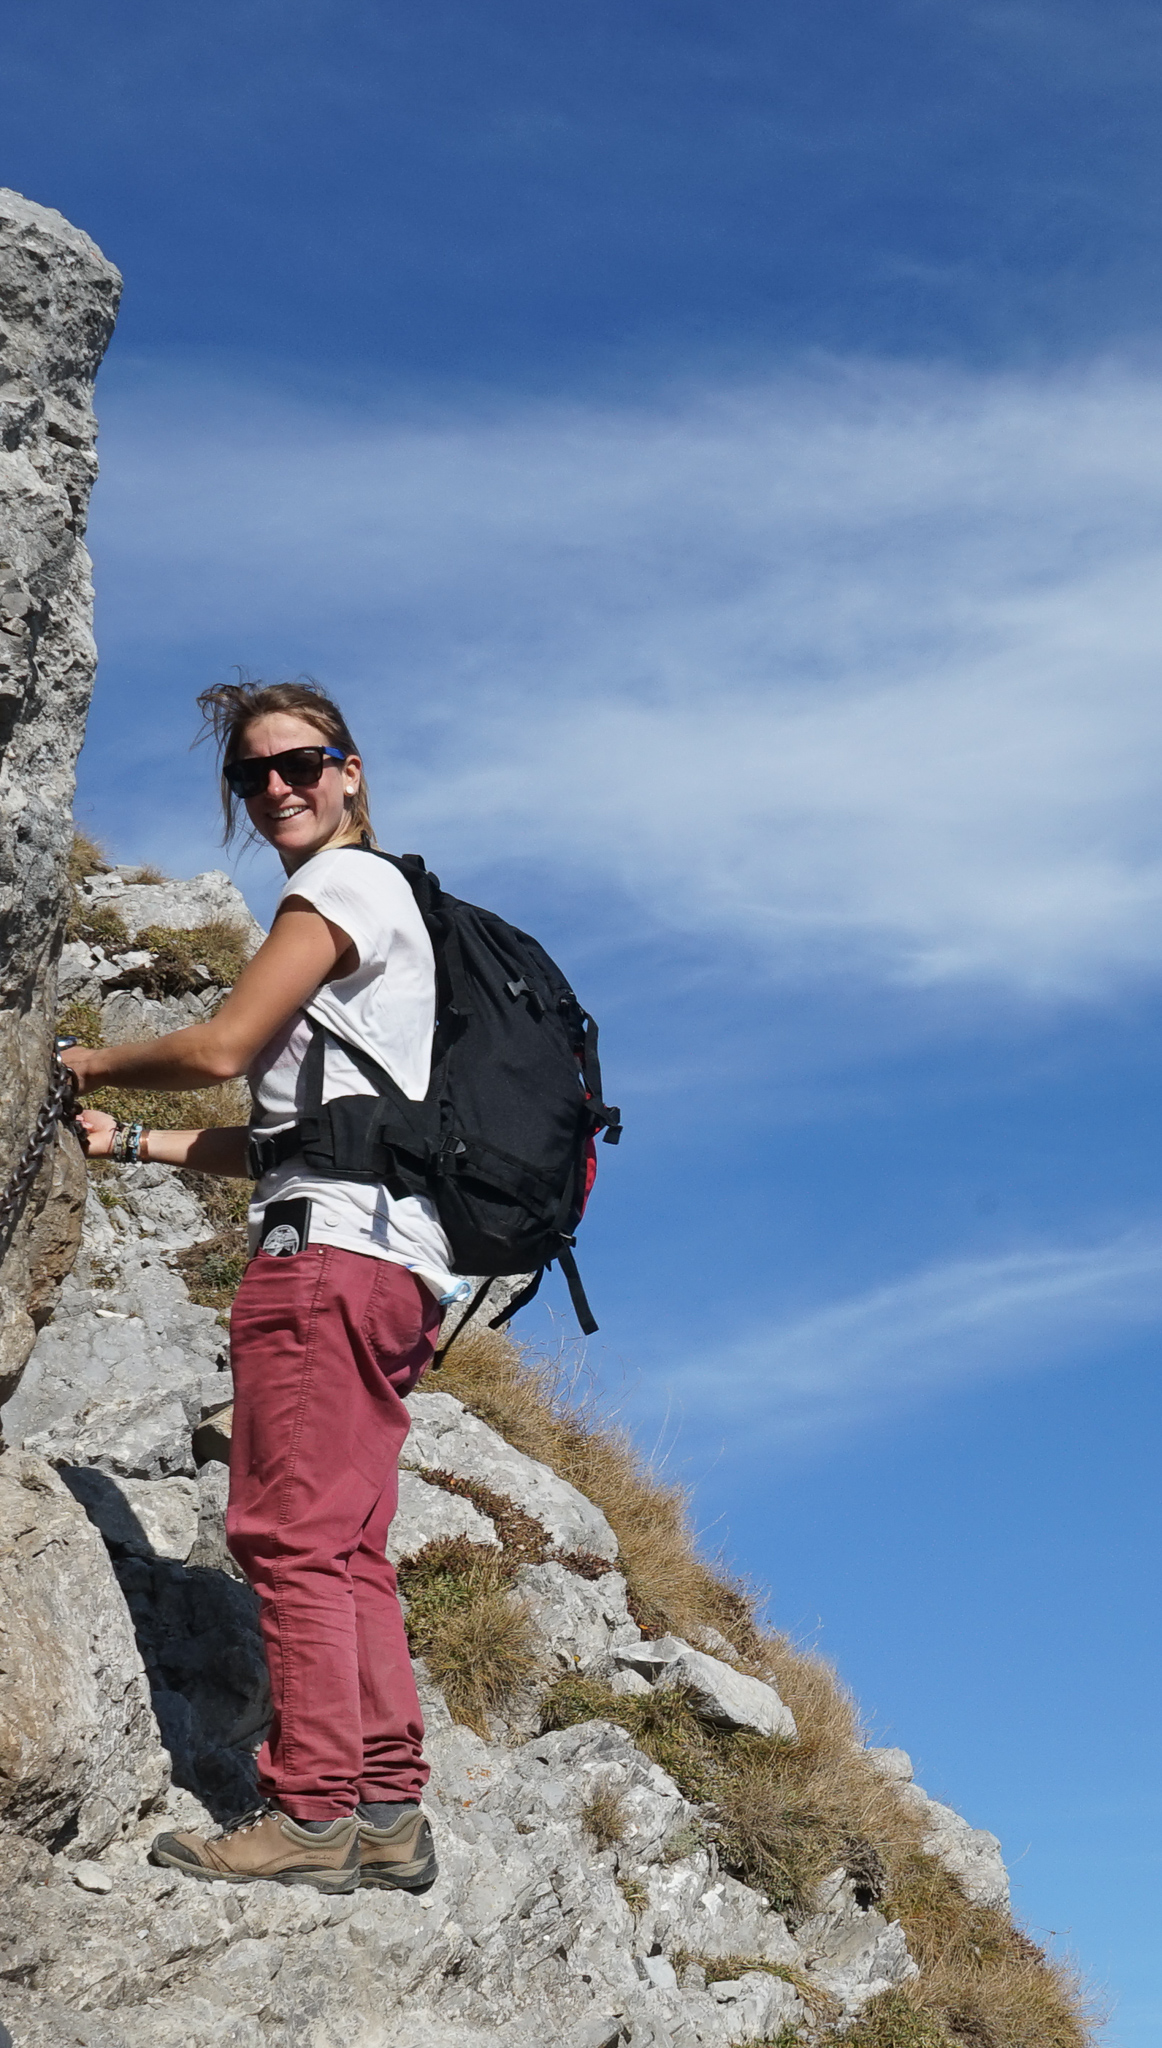 Your Guide - Hanna Kozlowska - A native of Zakopane, Hanna is at home in the Tatra Mountains but has traveled and taught mountain adventure sports in the Alps, Pyrenees, the Rockies, and the Caucasus. She is an outdoor enthusiast and loves to hike, snowboards, windsurf, and kiteboard.